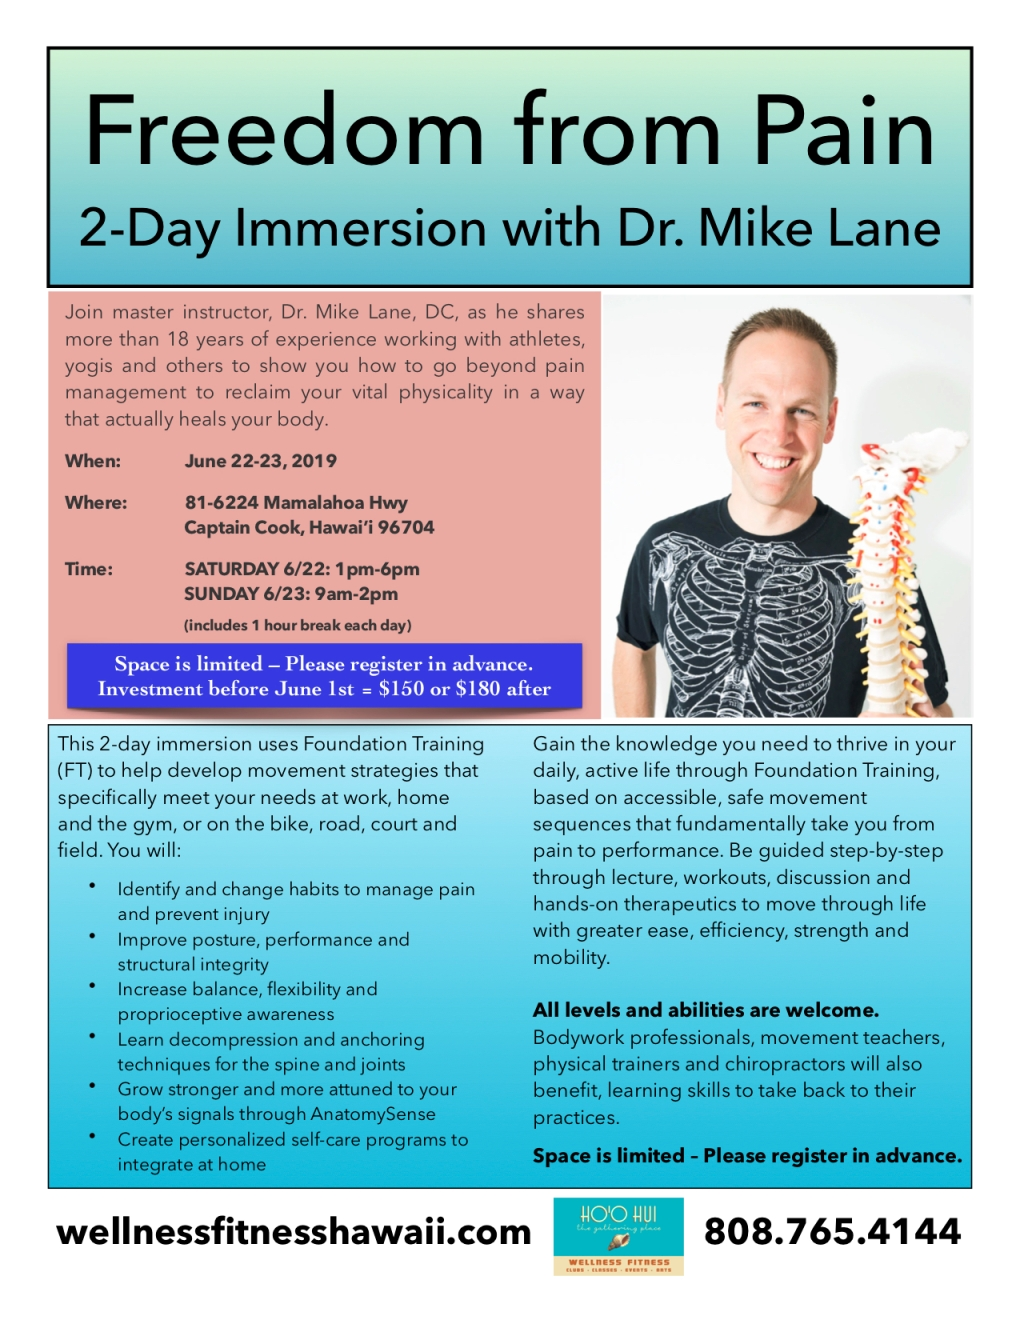 Freedom from Pain with Dr. Mike Lane June 2019